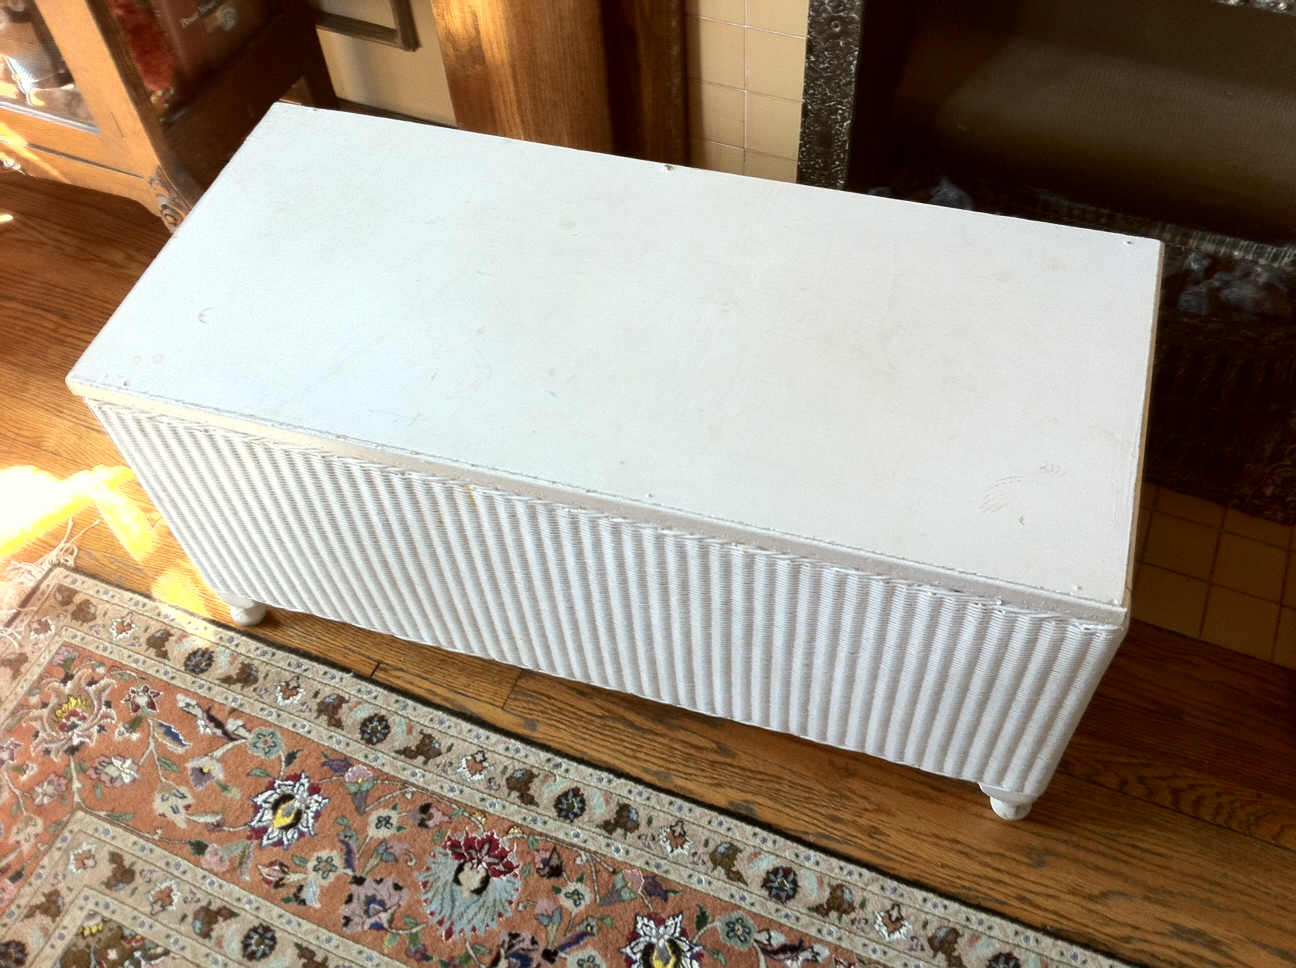 Lady jane 39 s treasure trove sold white wicker blanket chest toy chest or coffee table 30 White wicker coffee table